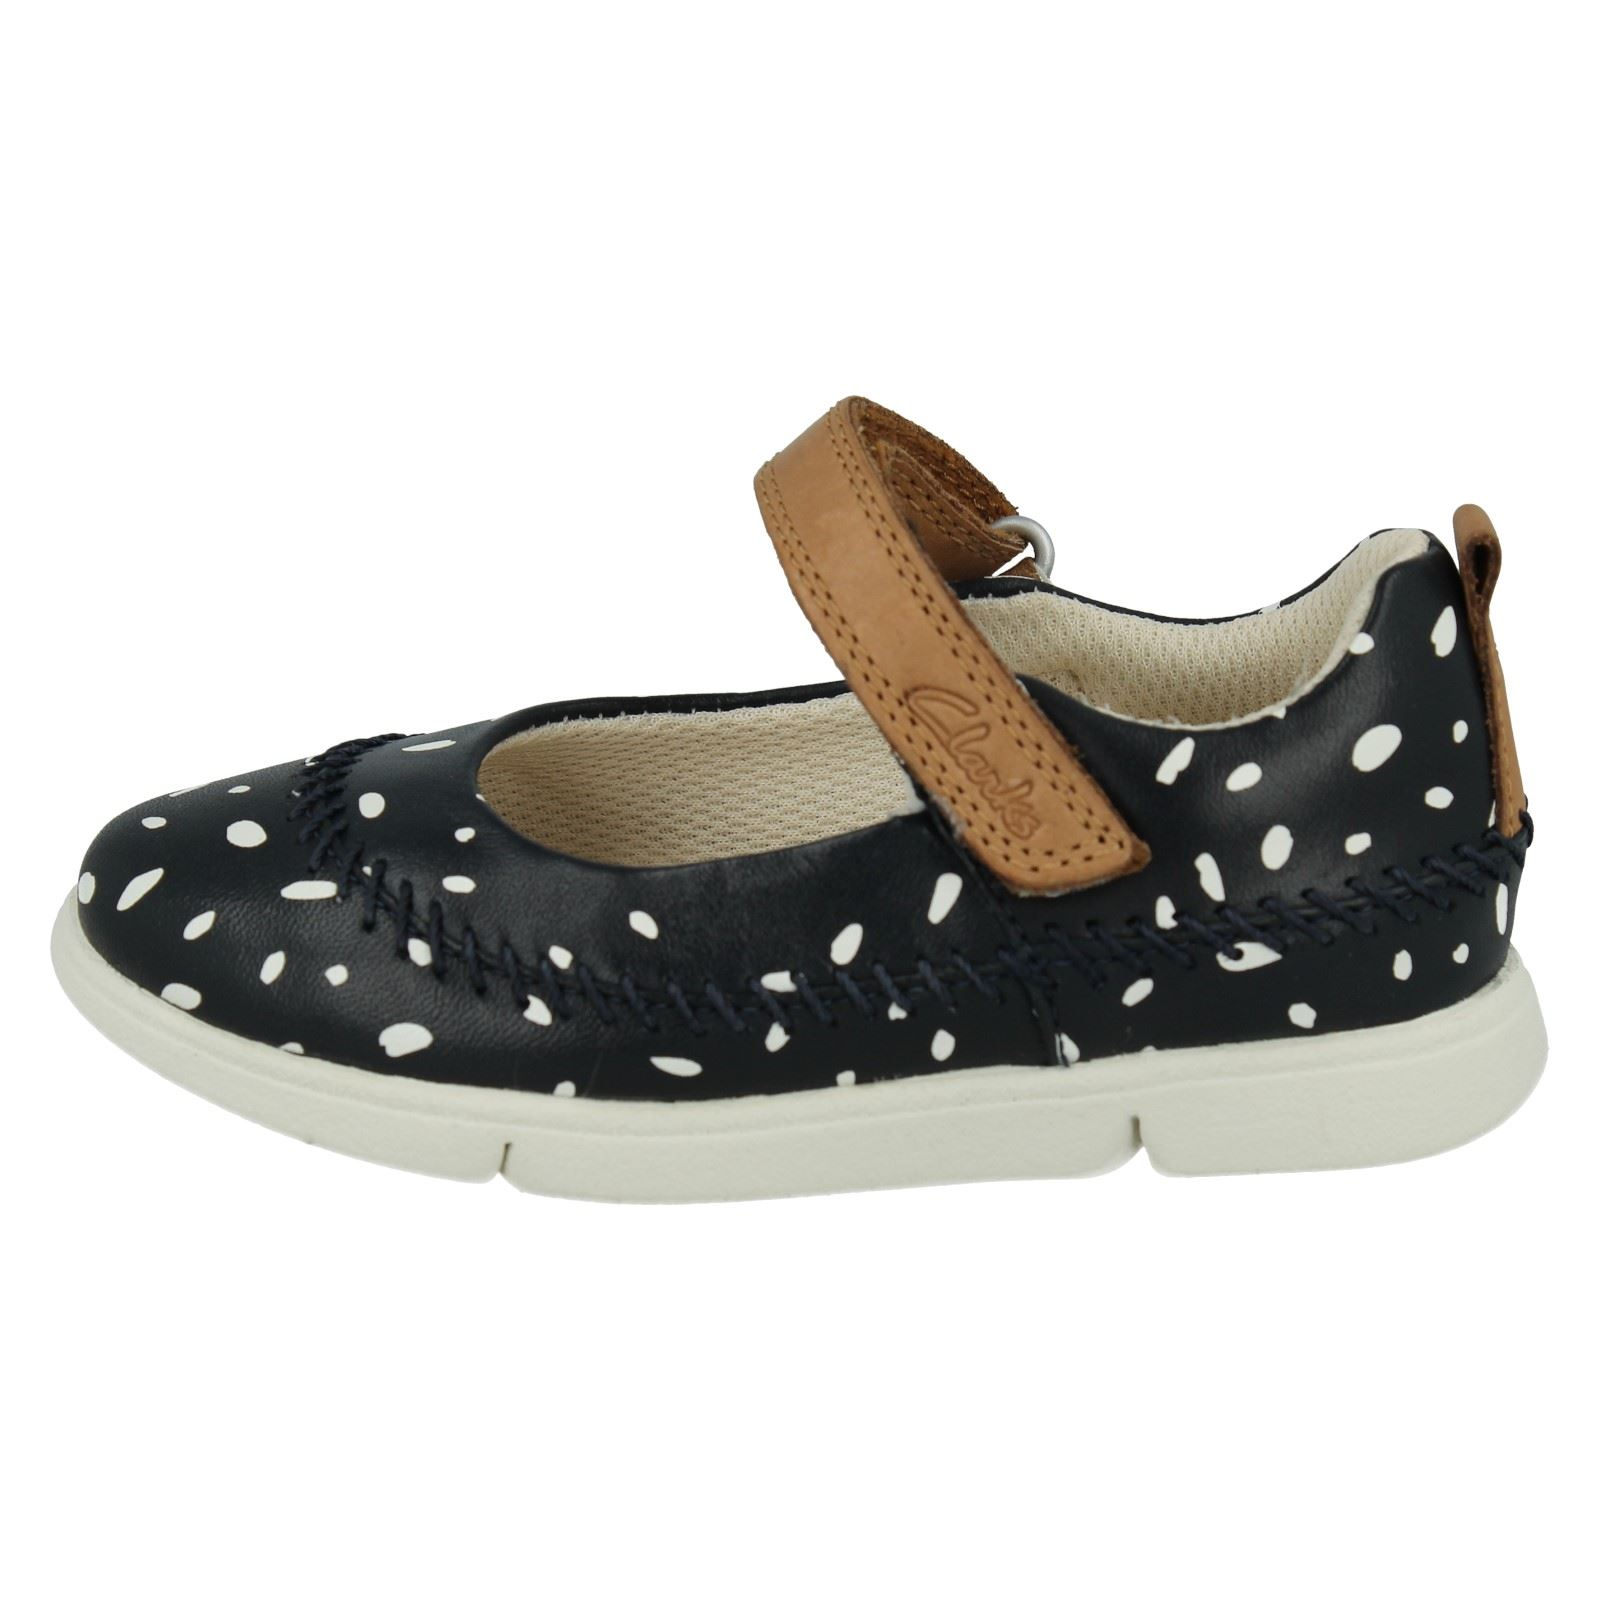 Girls Clarks Shoes The Style - Tri Molly